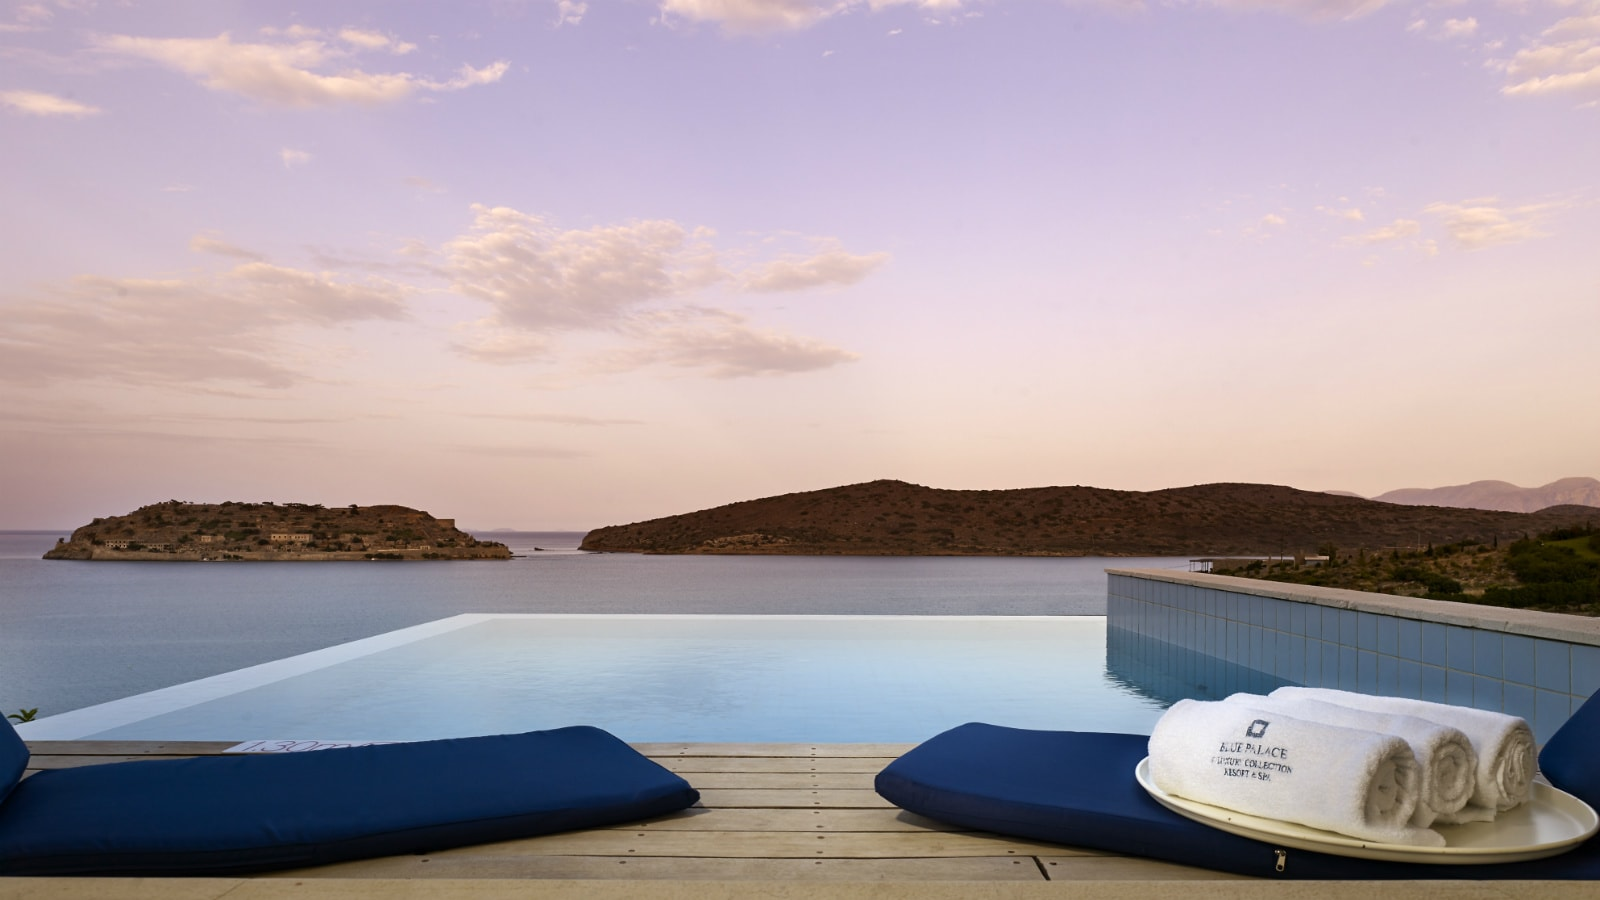 Blue Palace Luxury Collection Resort and Spa crete island family holidays kidslovegreece luxury accommodation elounda 5 star spinaloga plaka lassithi hotel Greece cosmopolitan